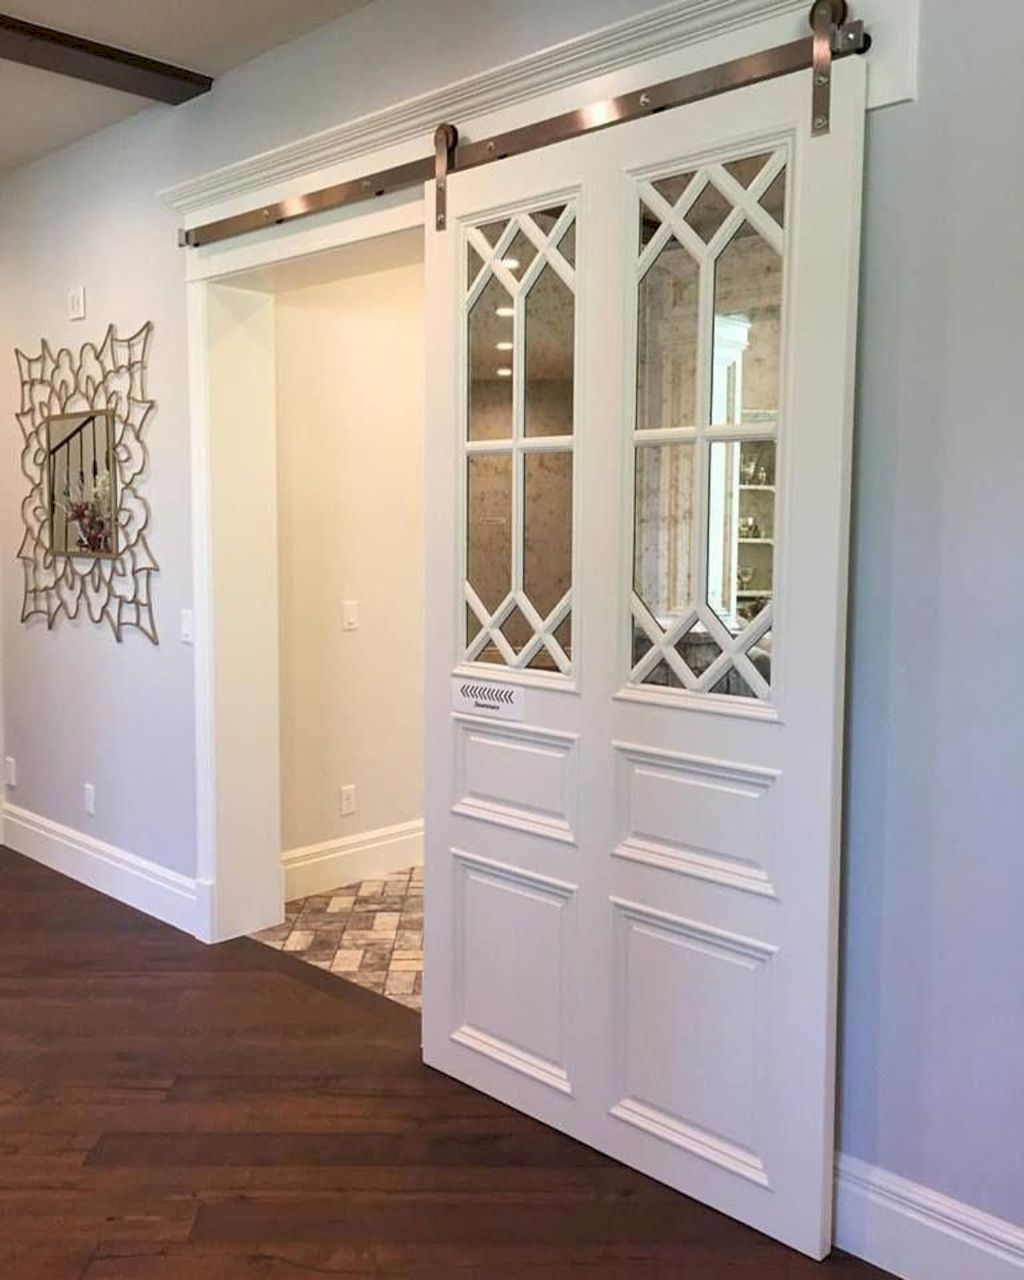 Barn style sliding doors applied as bedroom doors showing a rustic accent in the modern country homes Image 25